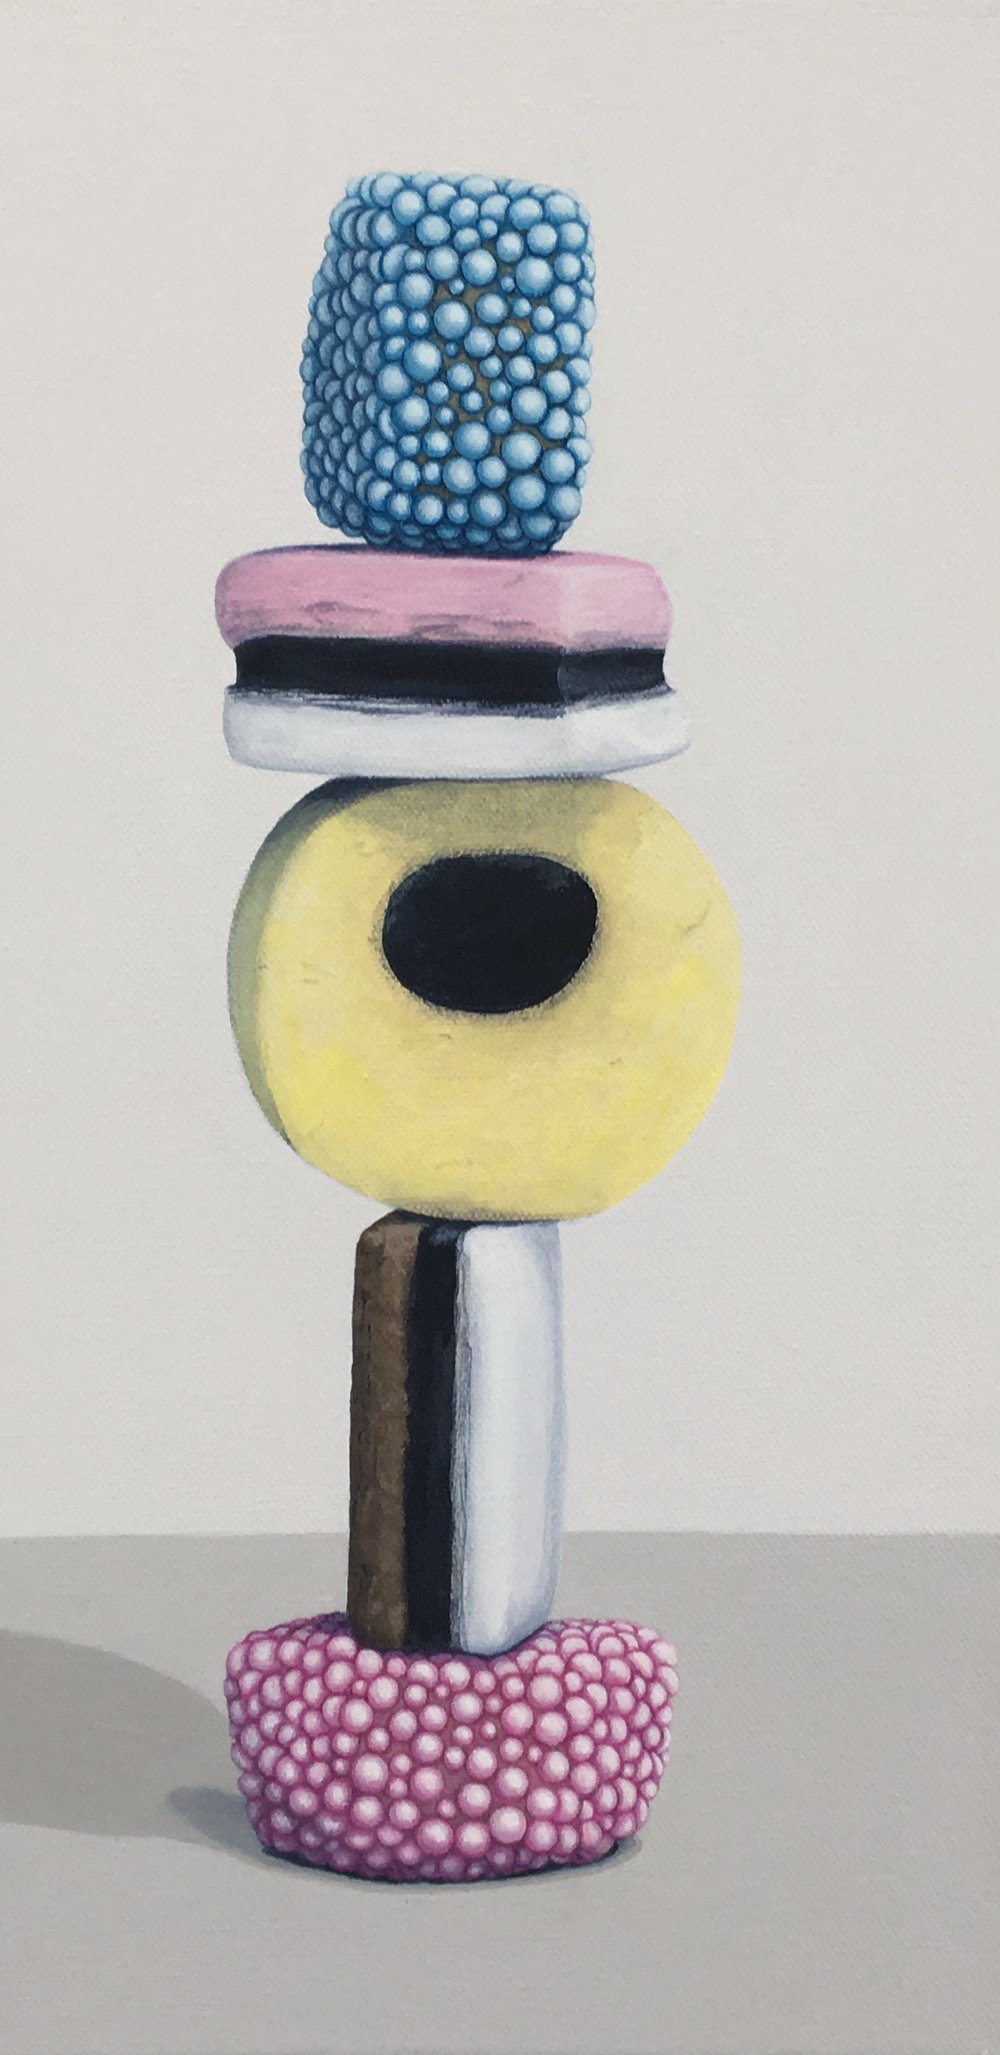 "Totem: Allsorts III   This enticing candy stacks is a delightful temptation. As a culture we are generally attracted to these charming colors and interesting shapes, but once the candy is experienced as a food there is often a mismatch between its attractiveness and its taste. This work explores the occurrence of the incongruity of appearance and experience.  8"" x 16"" gallery wrapped canvas  $400.00"